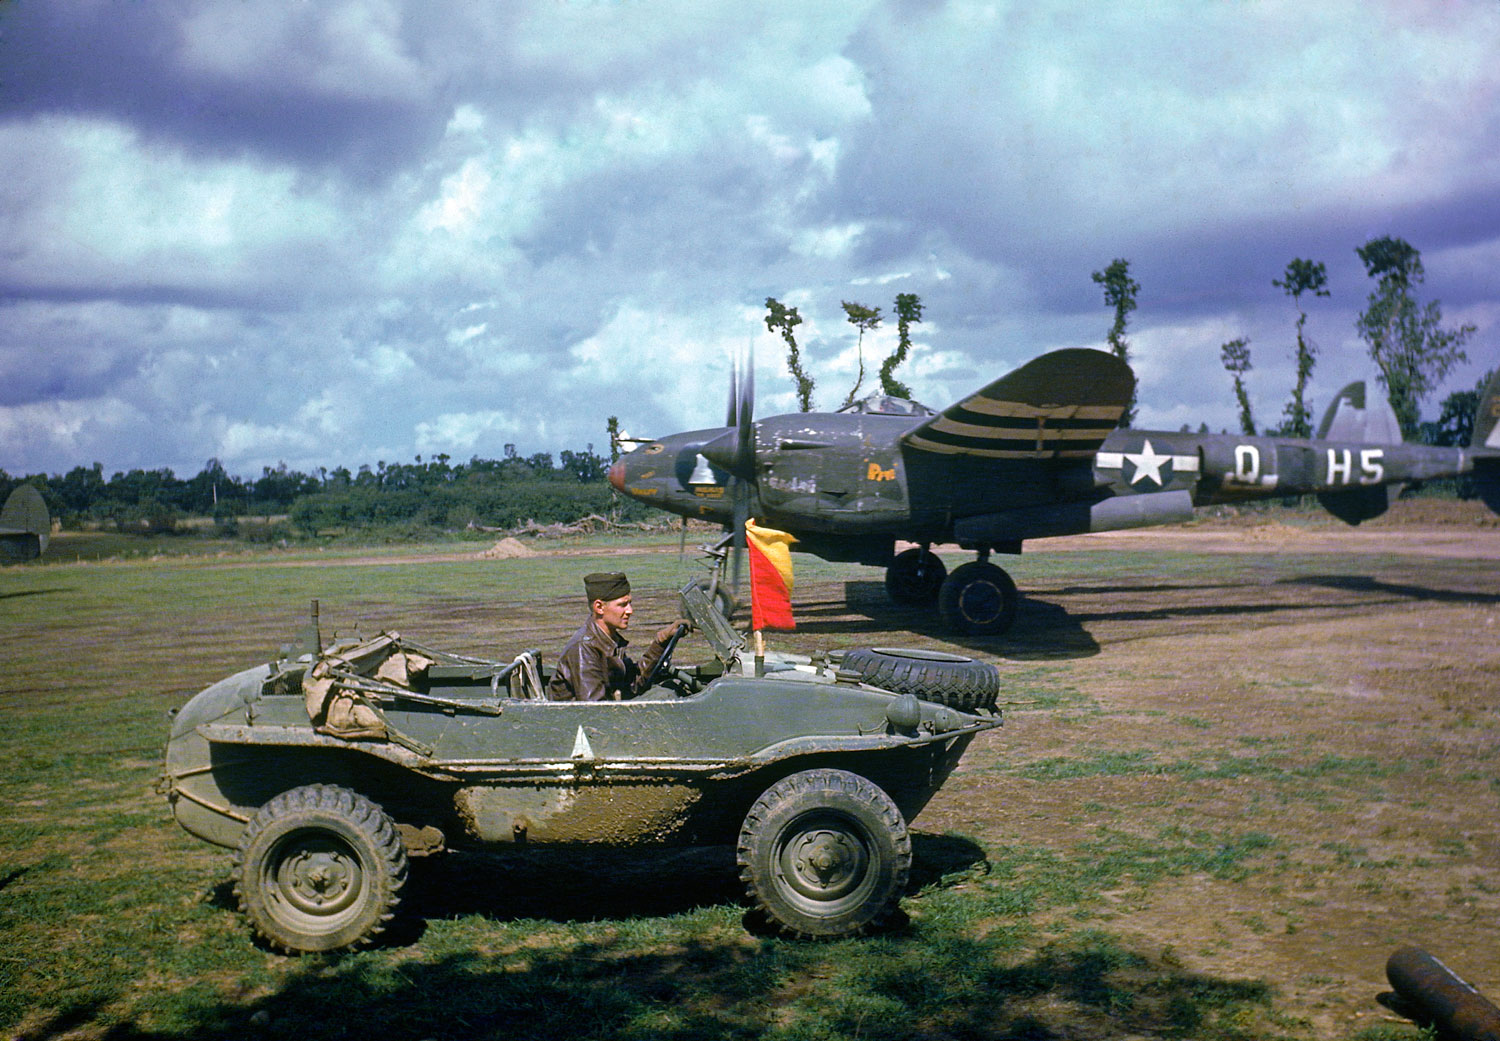 A P-38 fighter plane sits in the background as the pilot arrives in a captured German vehicle, France, 1944.